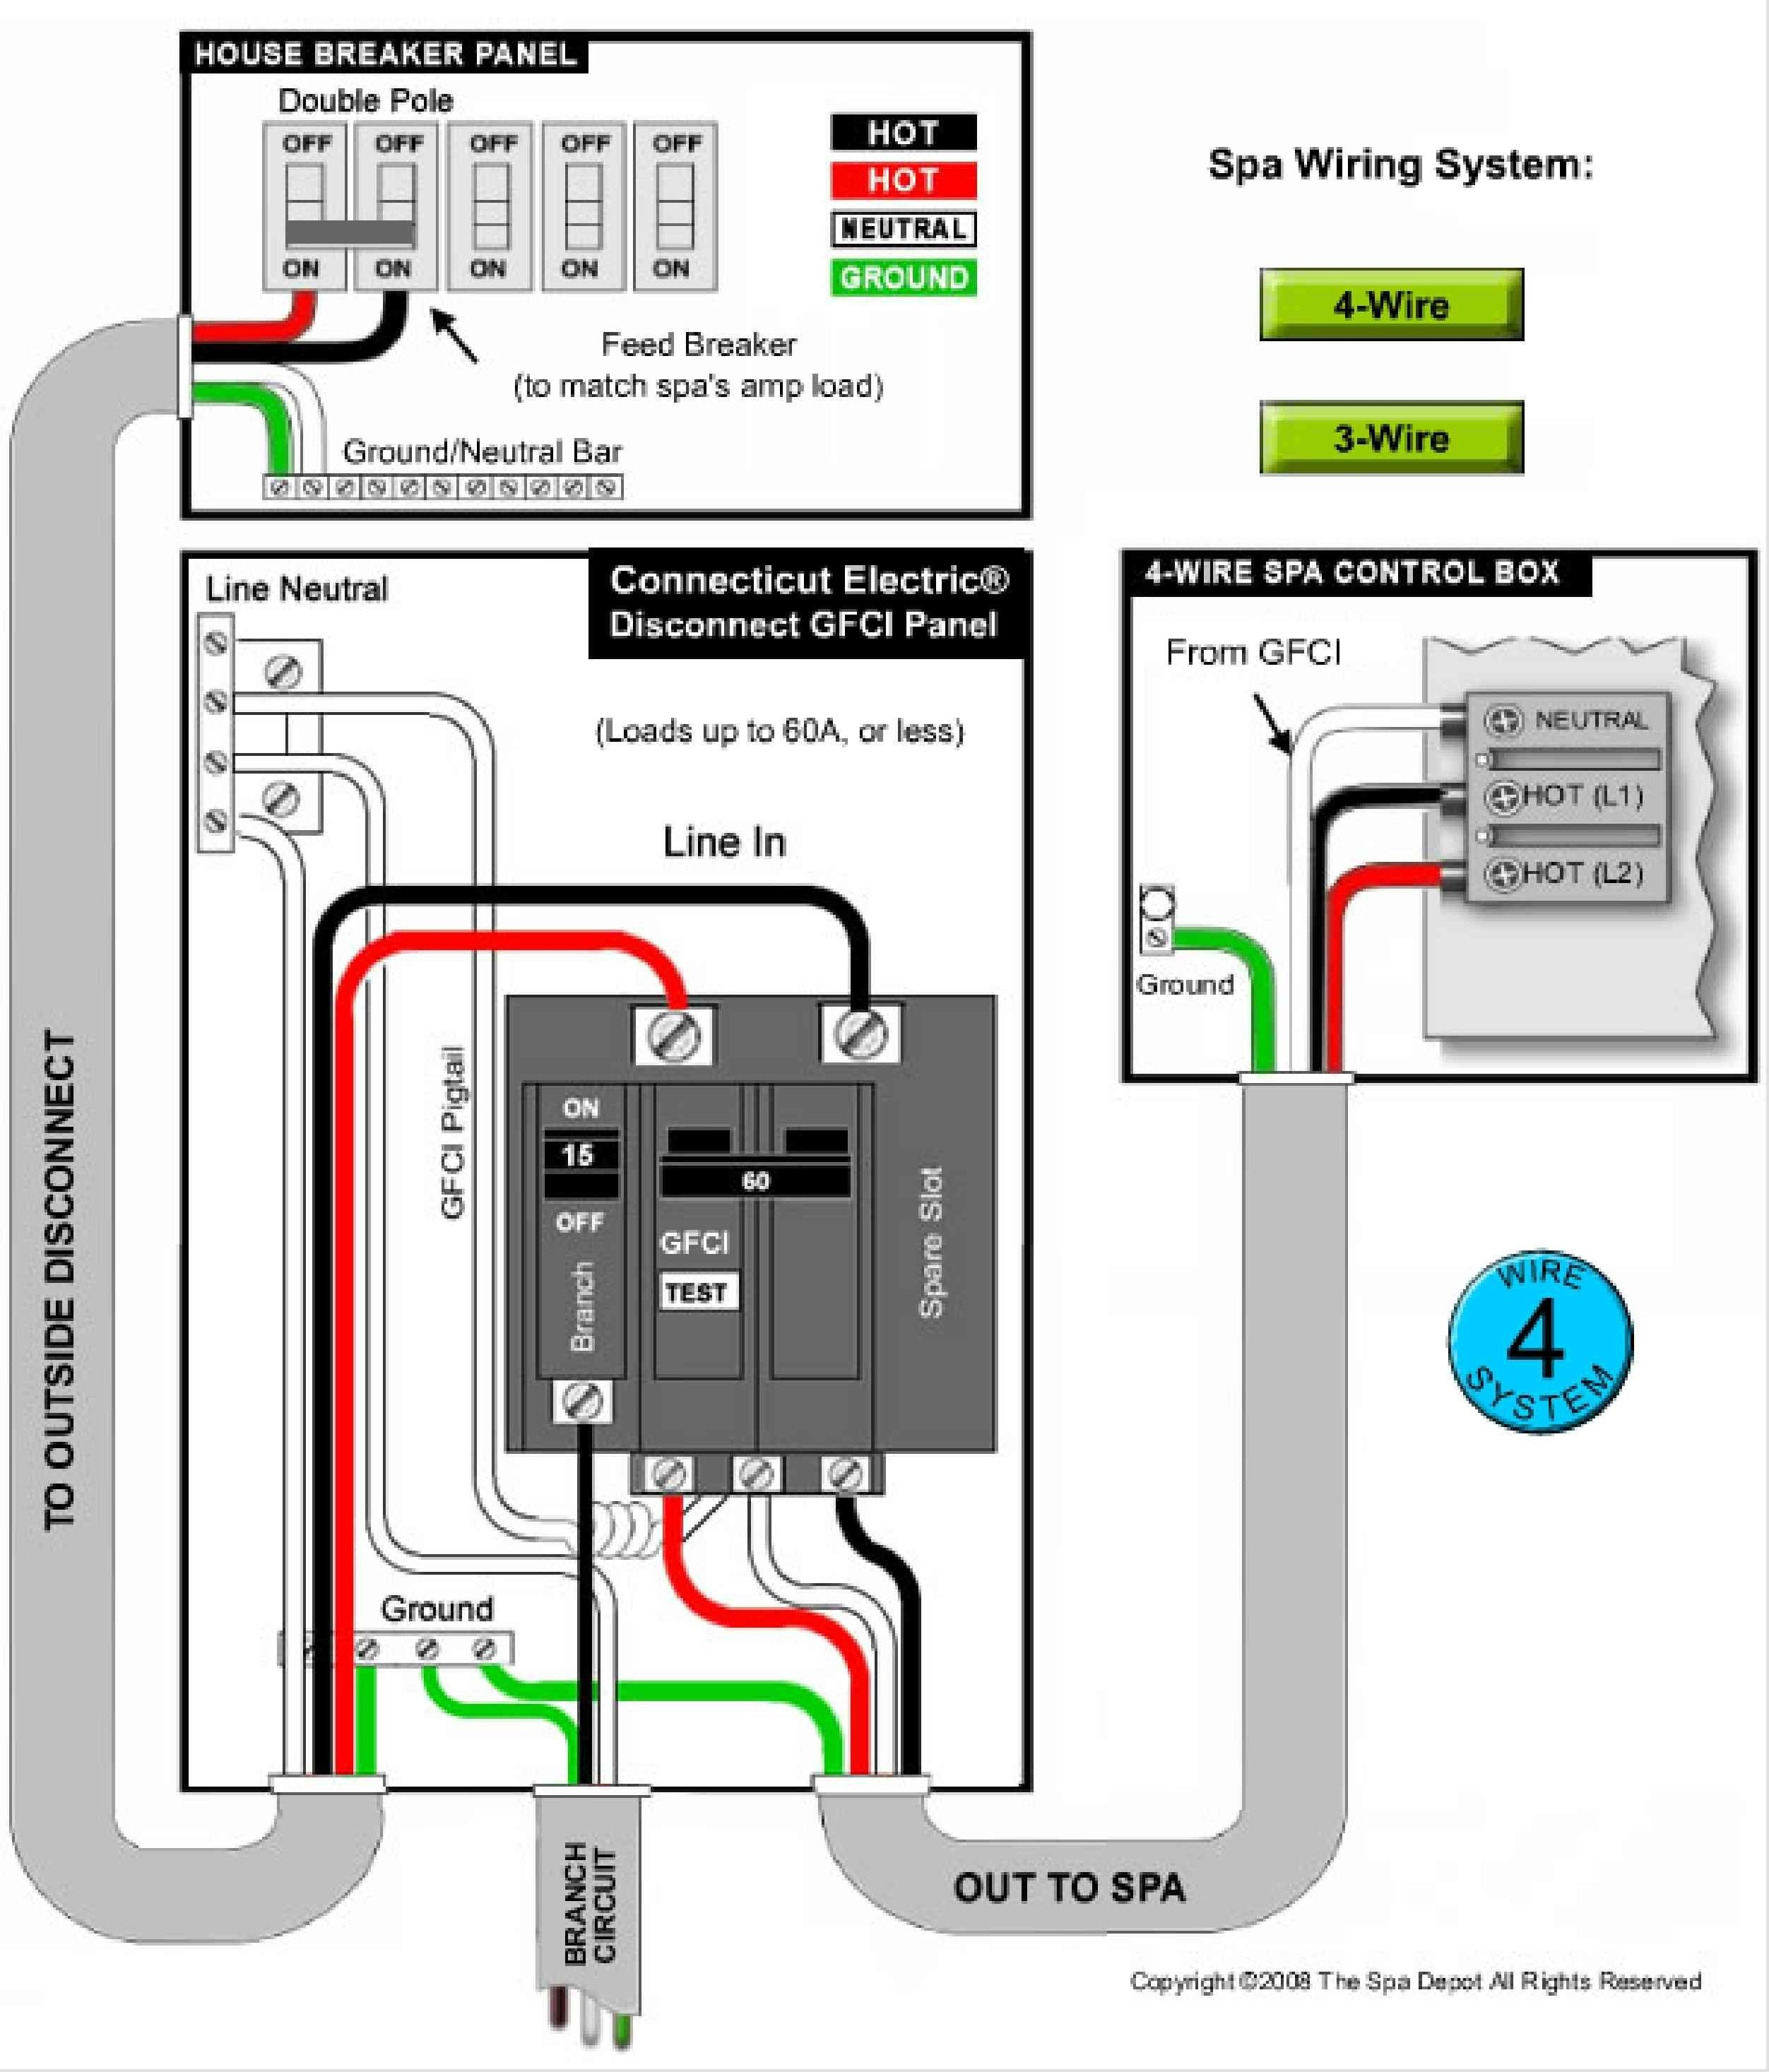 Unique Wiring Diagram For Electric Stove Outlet Diagram Diagramsample Diagramtemplate Wiringdiagram Diagramc Hot Tub Delivery Gfci Electrical Panel Wiring